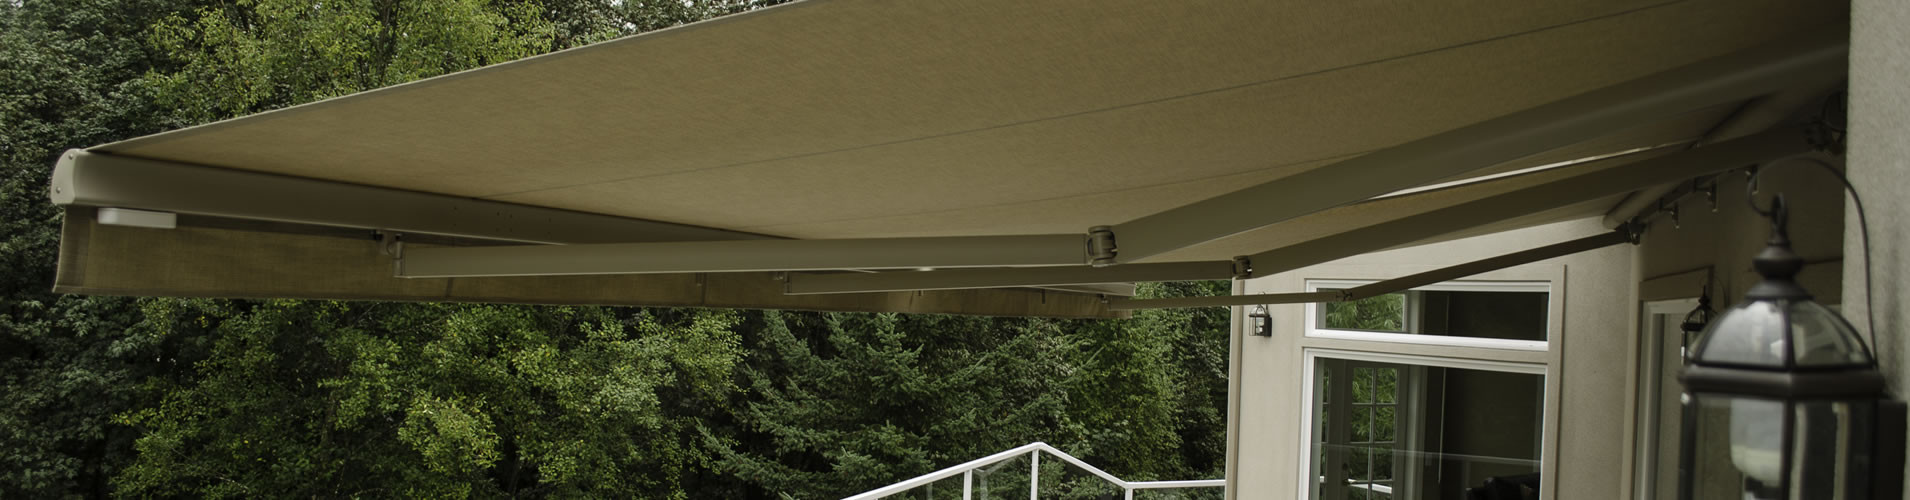 Retractable Awnings - Austin, TX